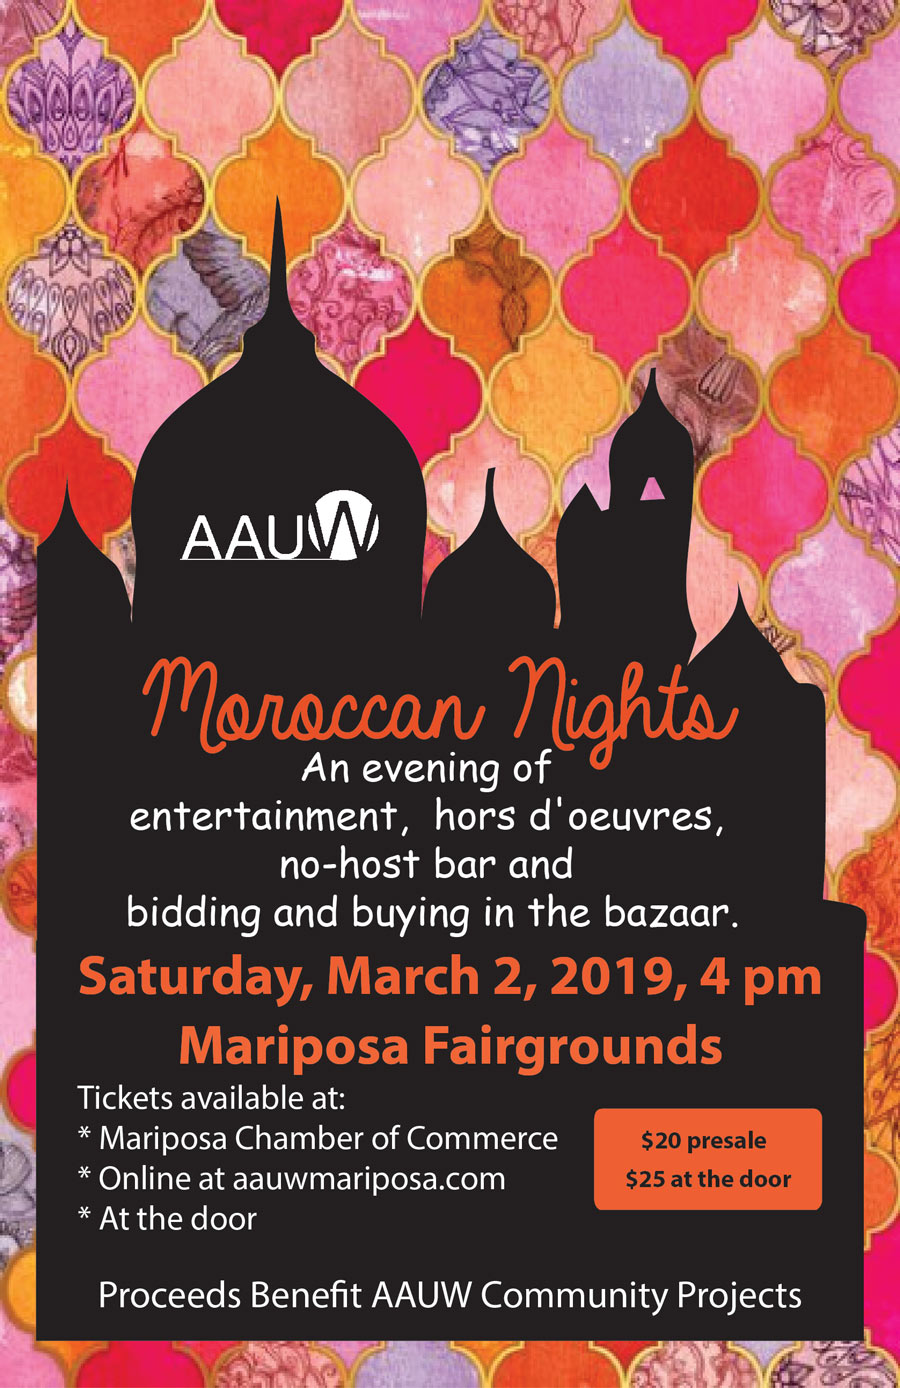 3 2 19 AAUW Moroccan Nights